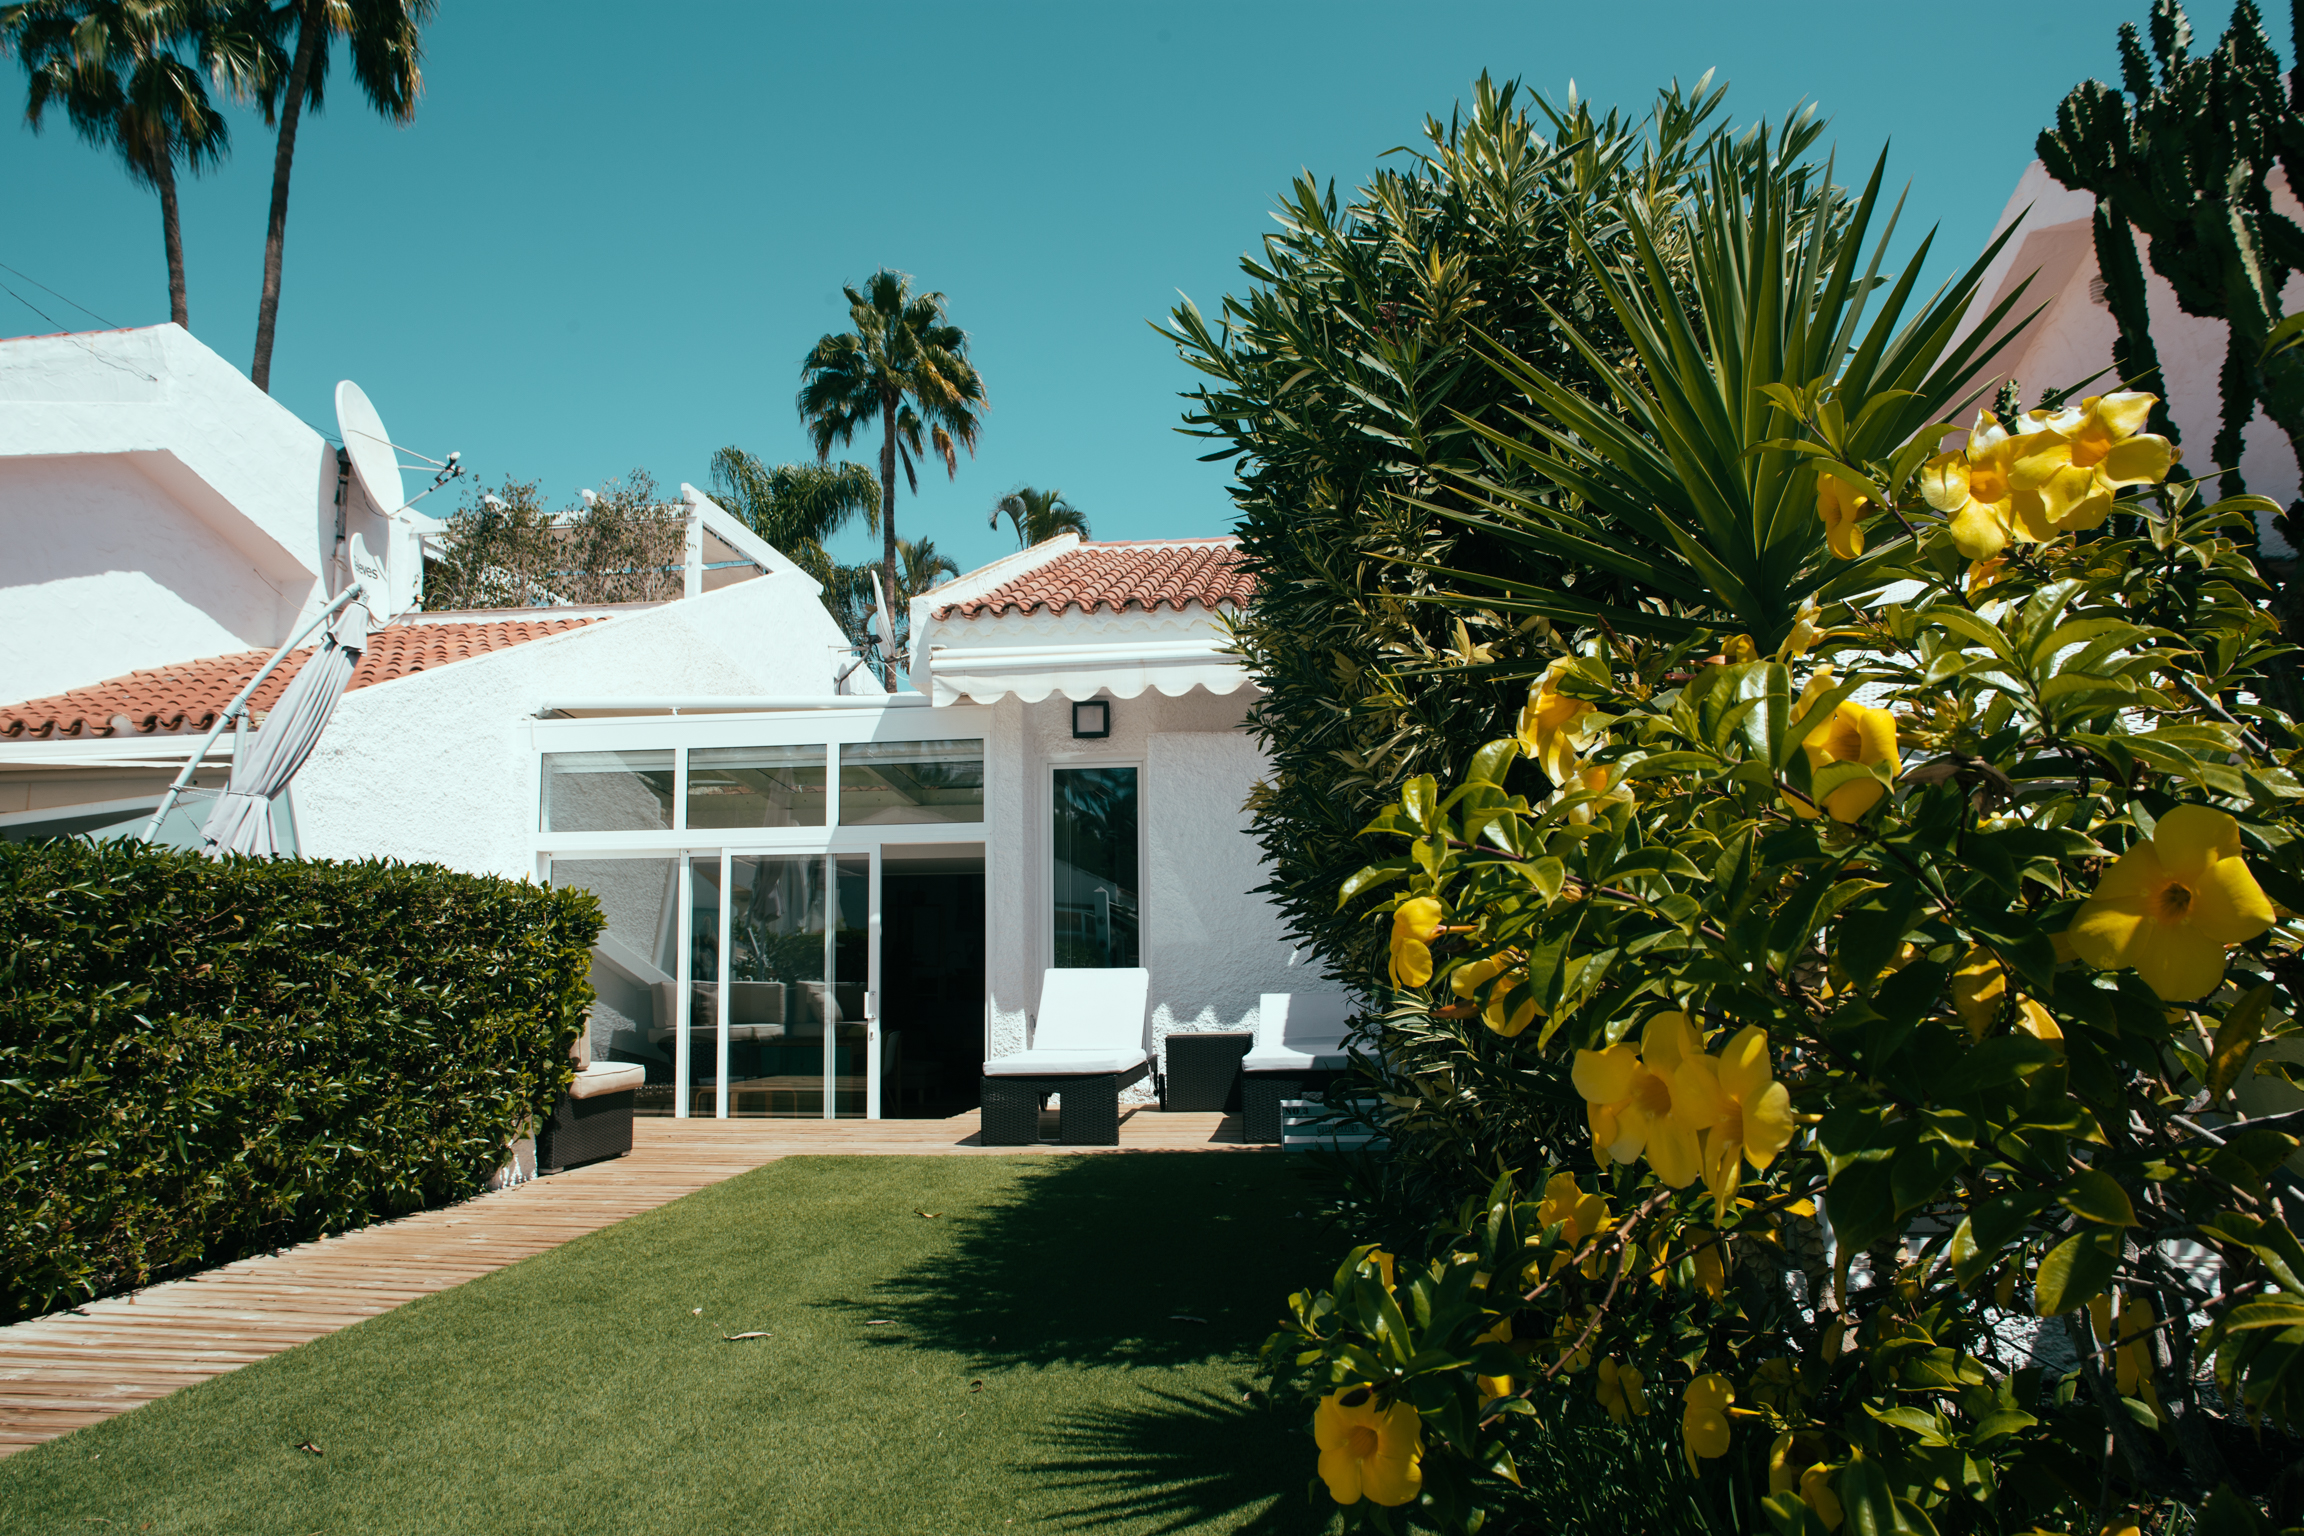 Luxury Bungalow in the Private Residential of Pasito Blanco.